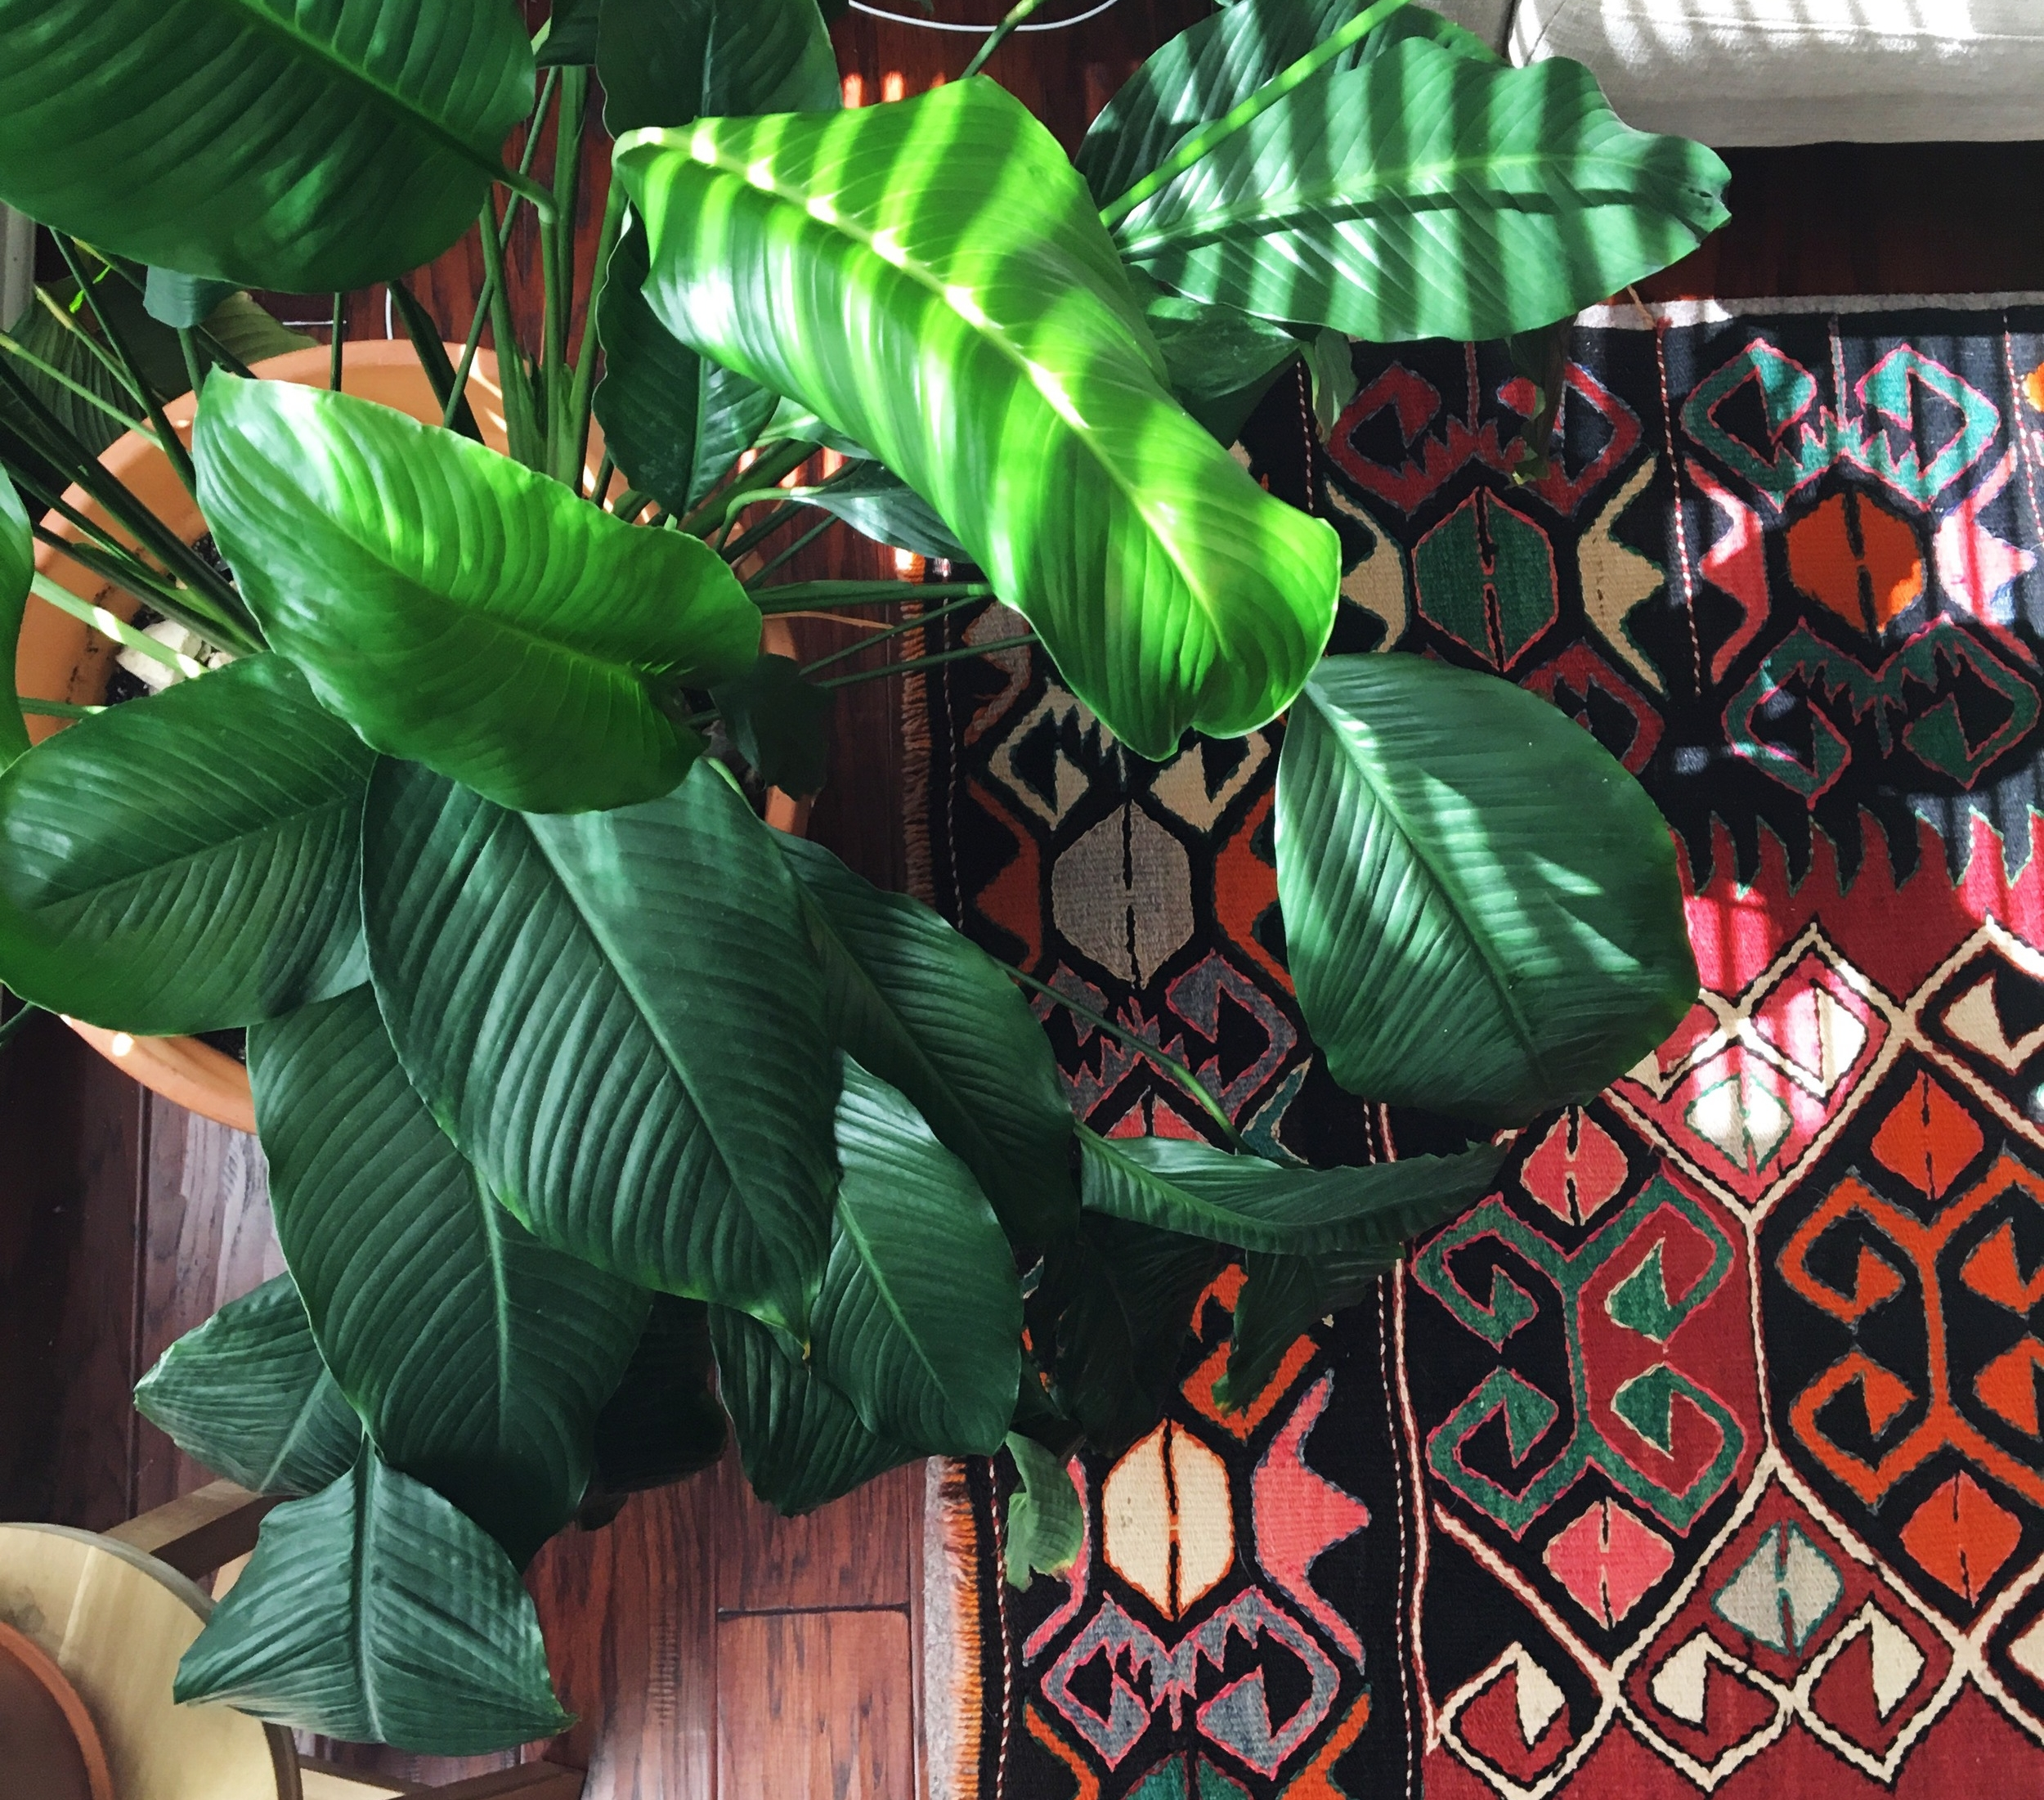 The hardest houseplants to kill. Buy these houseplants if you don't have a green thumb.